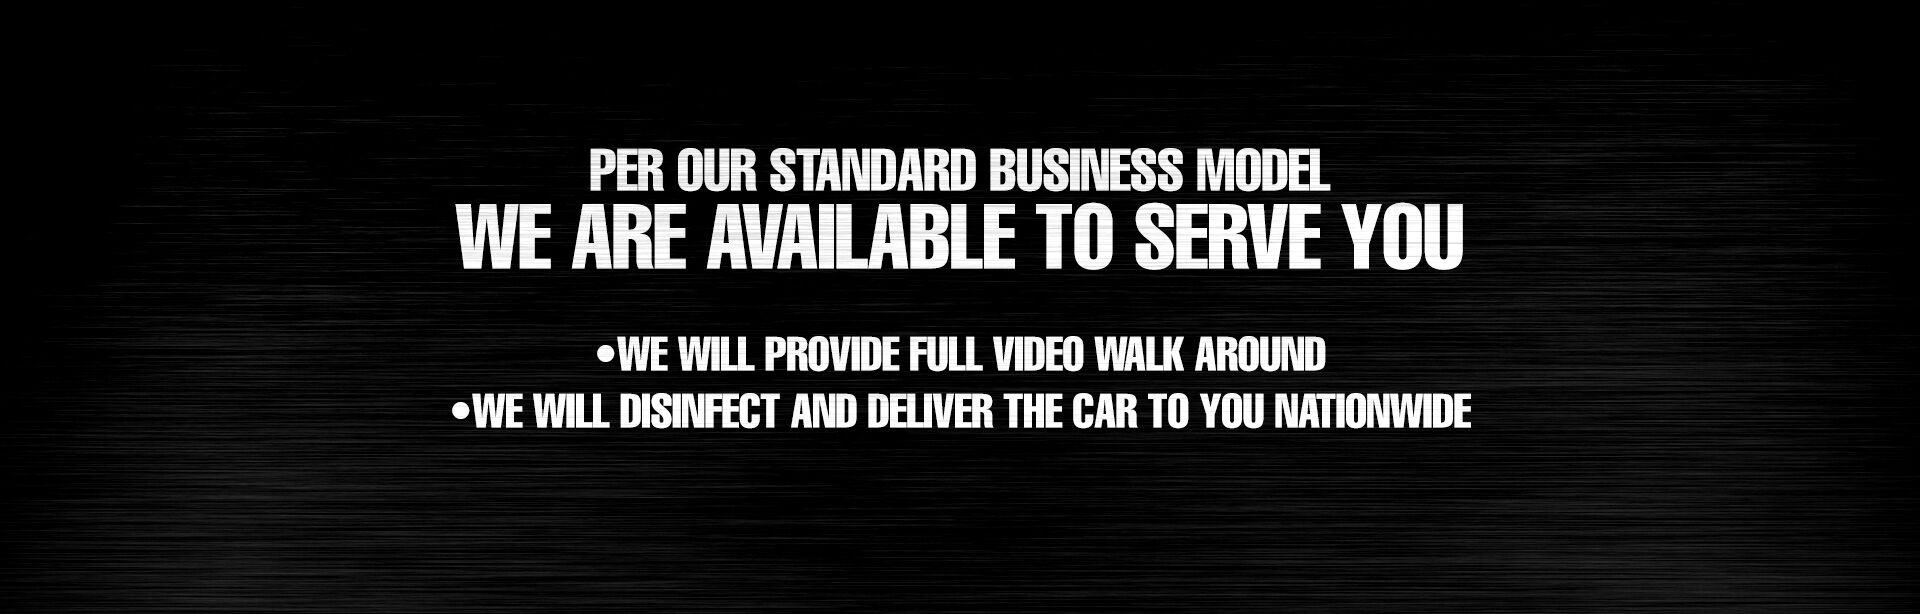 We are Available to Serve You